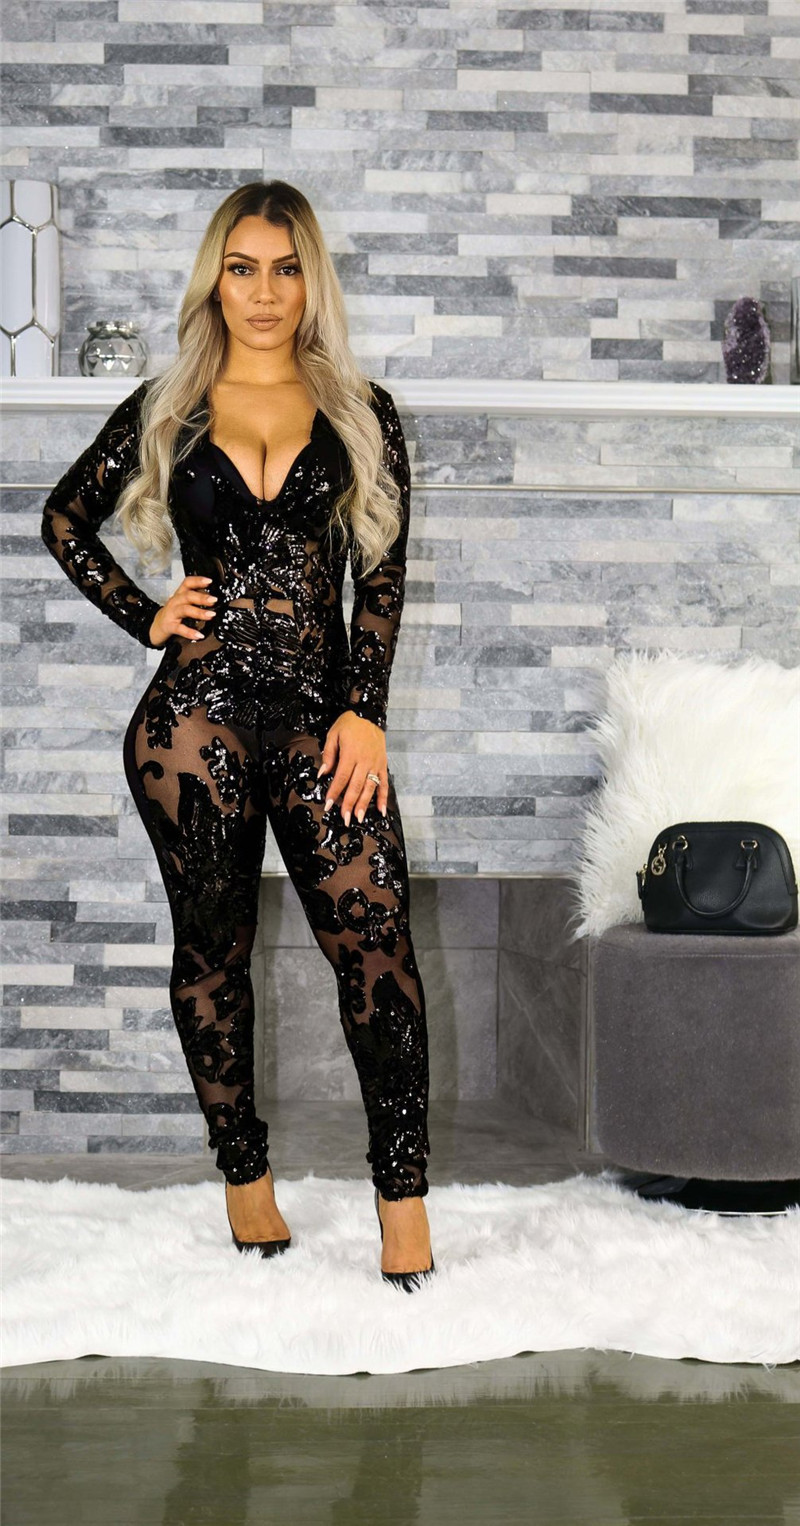 3880d2f66295 2019 See Through Black Sequin Jumpsuit Women Long Sleeve Sparkly ...